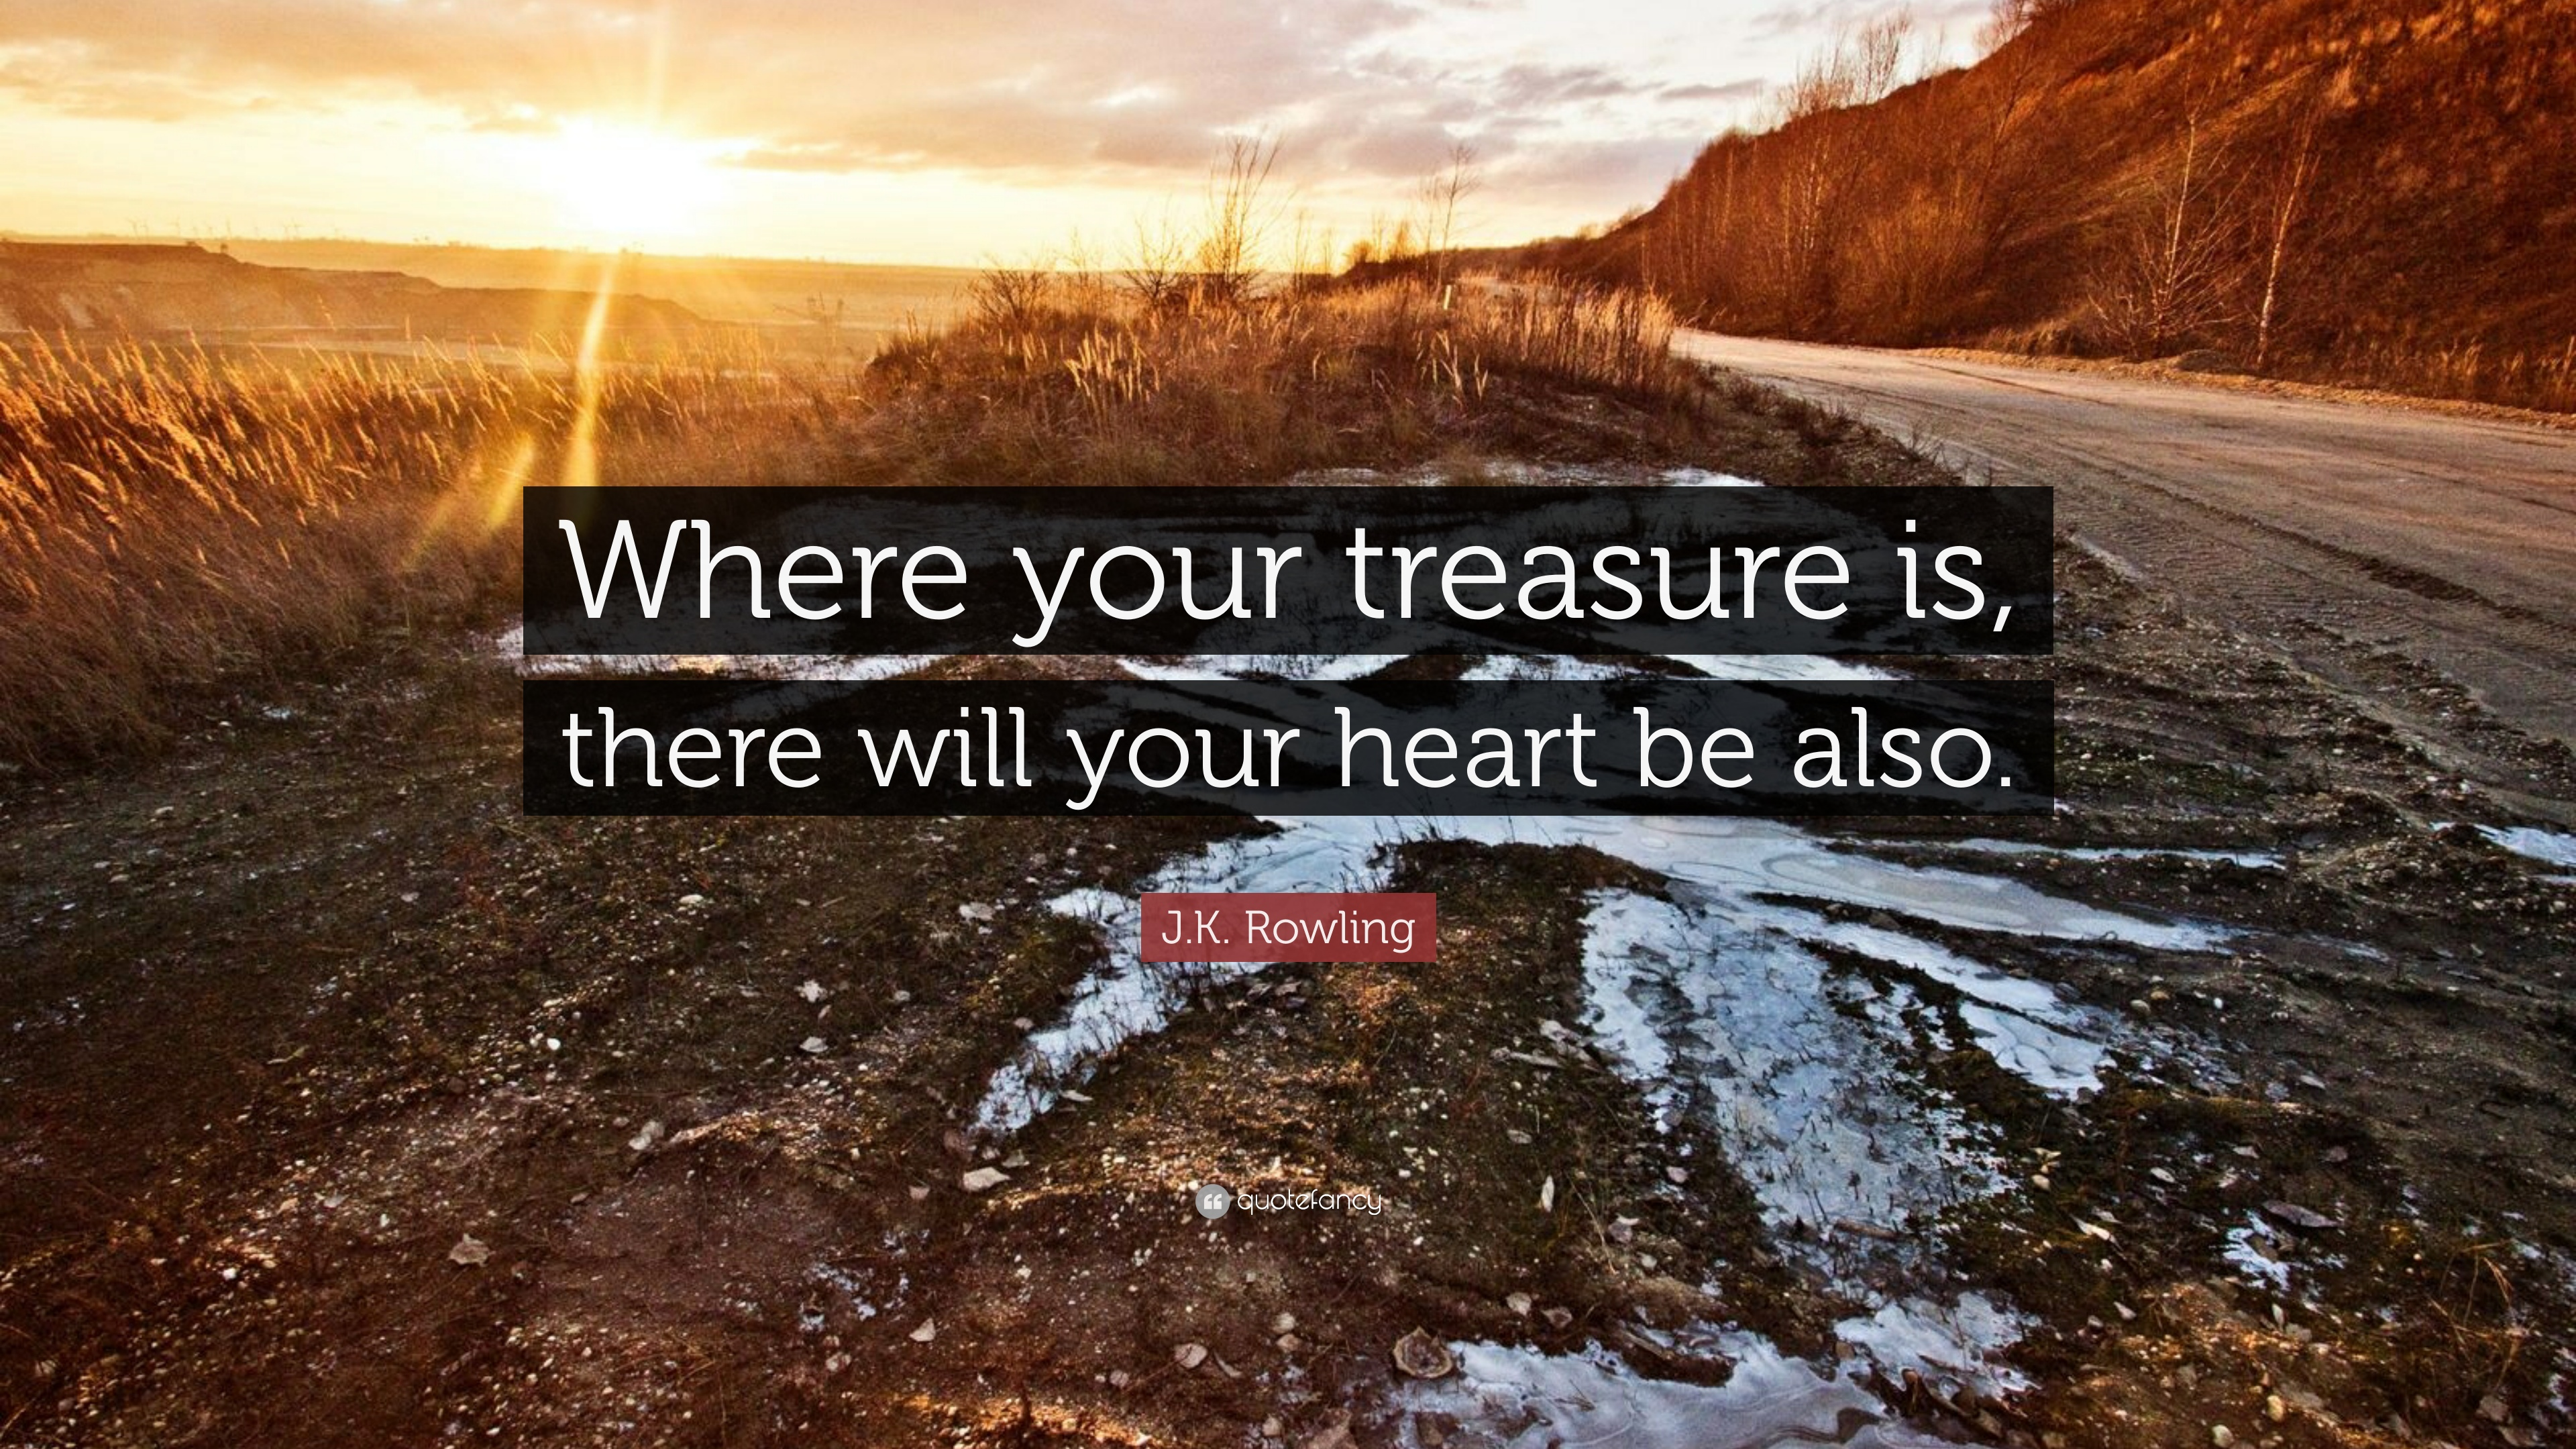 """J.K. Rowling Quote: """"Where your treasure is, there will your heart be also."""" (7 wallpapers) - Quotefancy"""